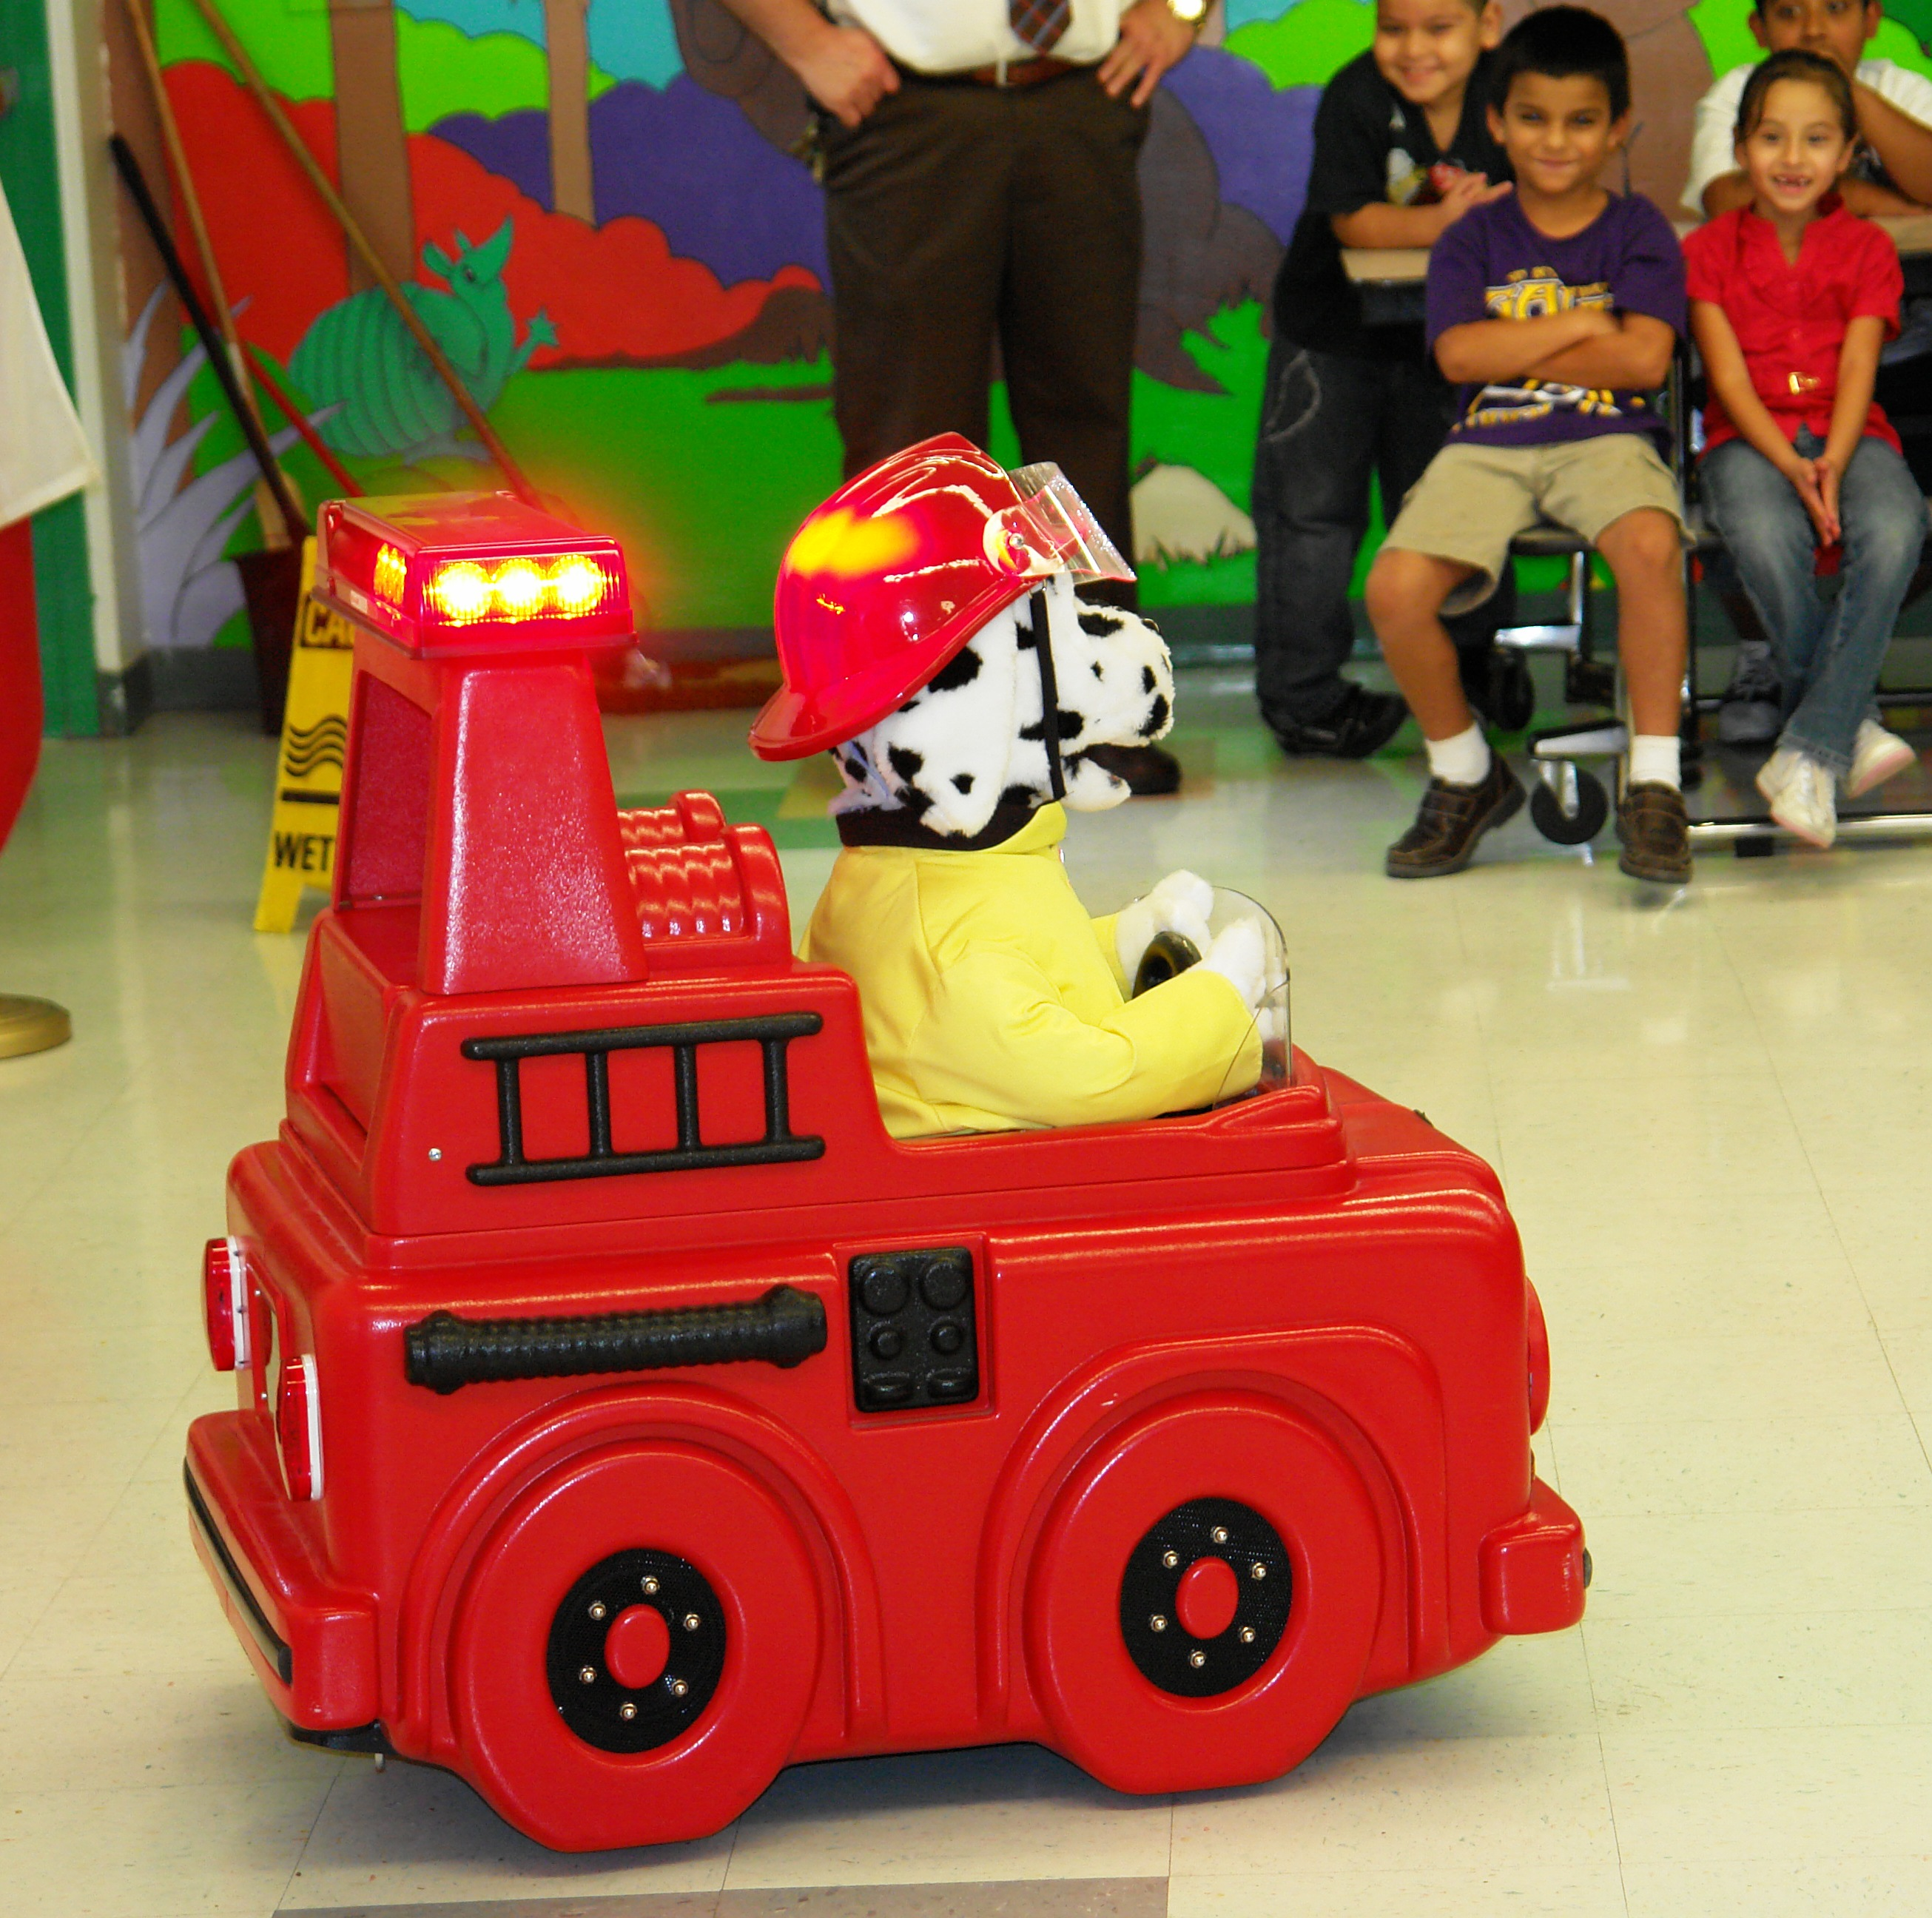 Sparky the stuffed fire dog drives a toy fire truck